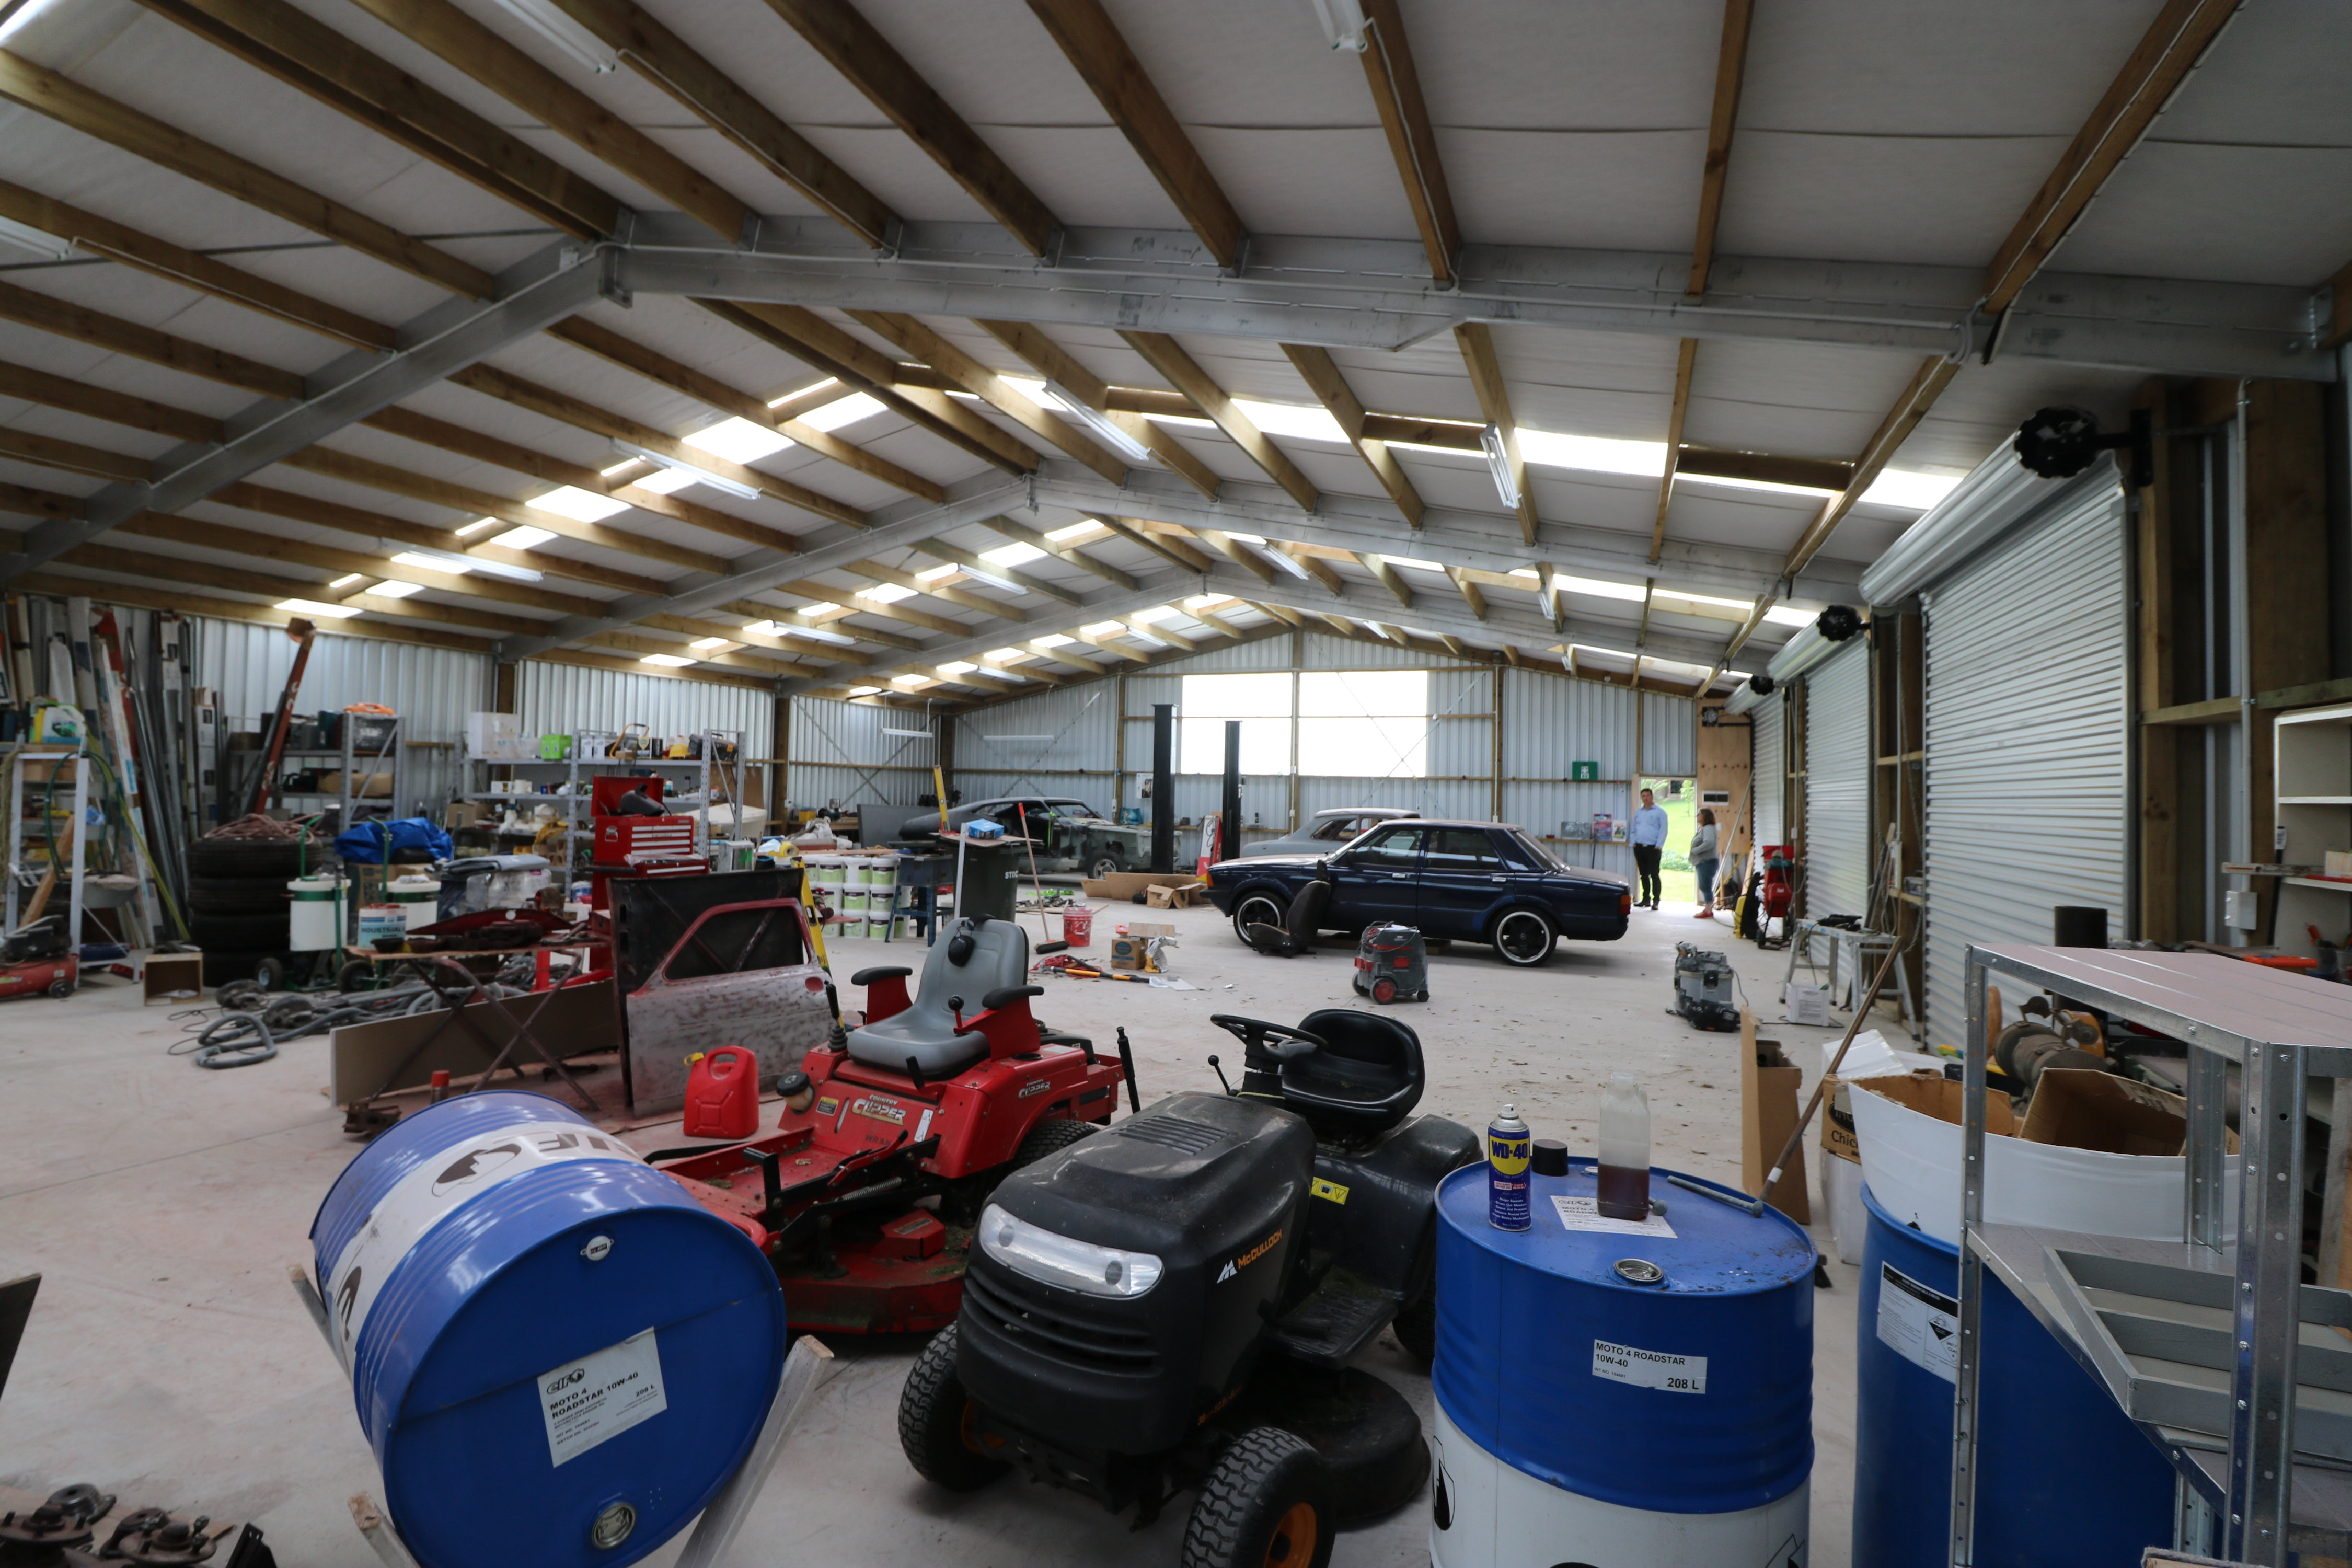 Our clearspan design helps maximise space in your workshop